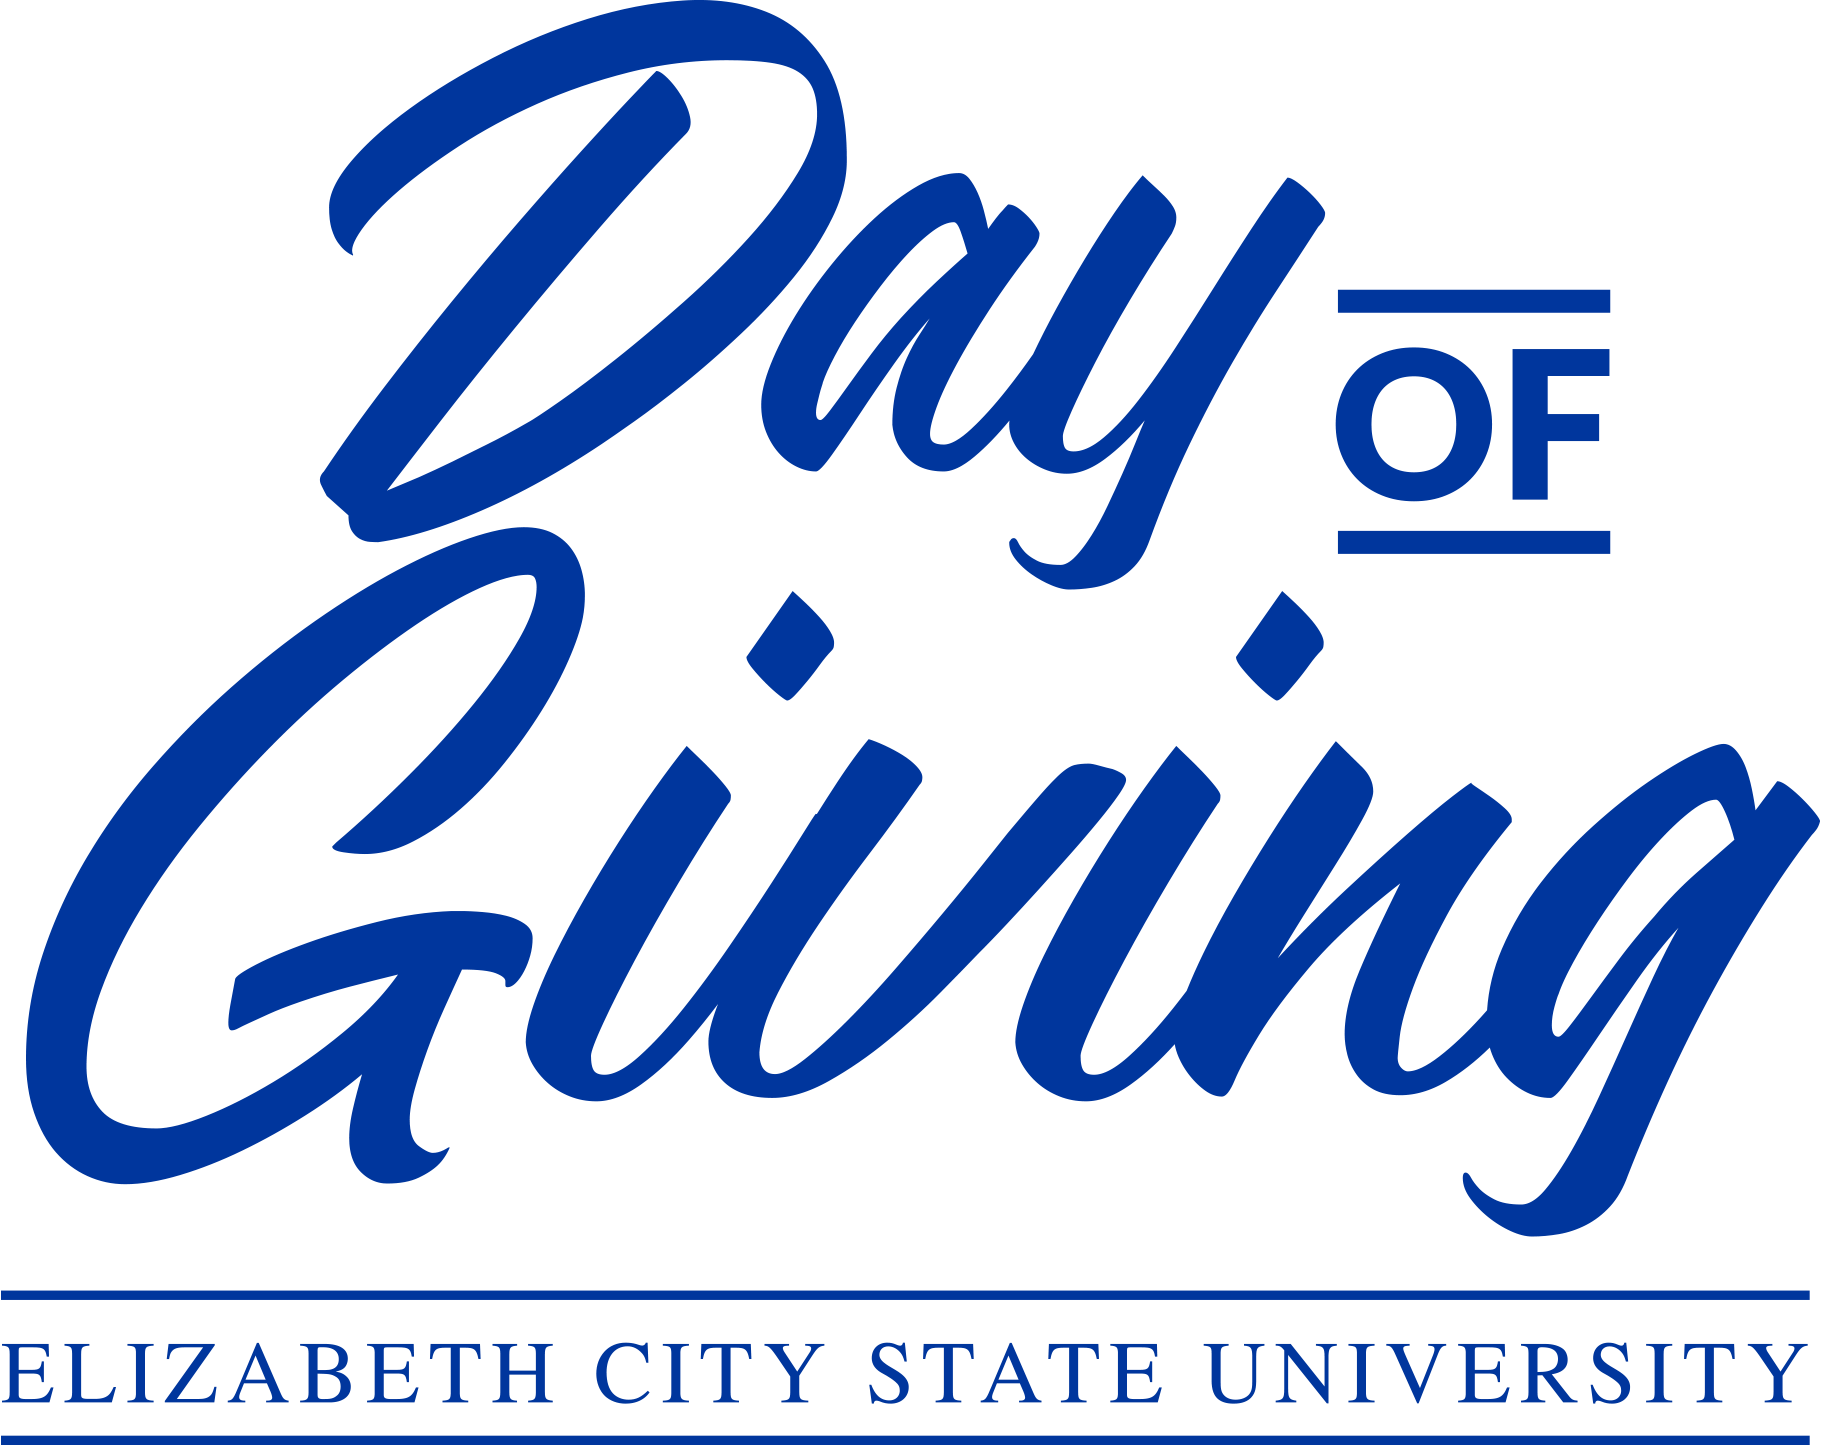 Day of giving logo ecsu all blue